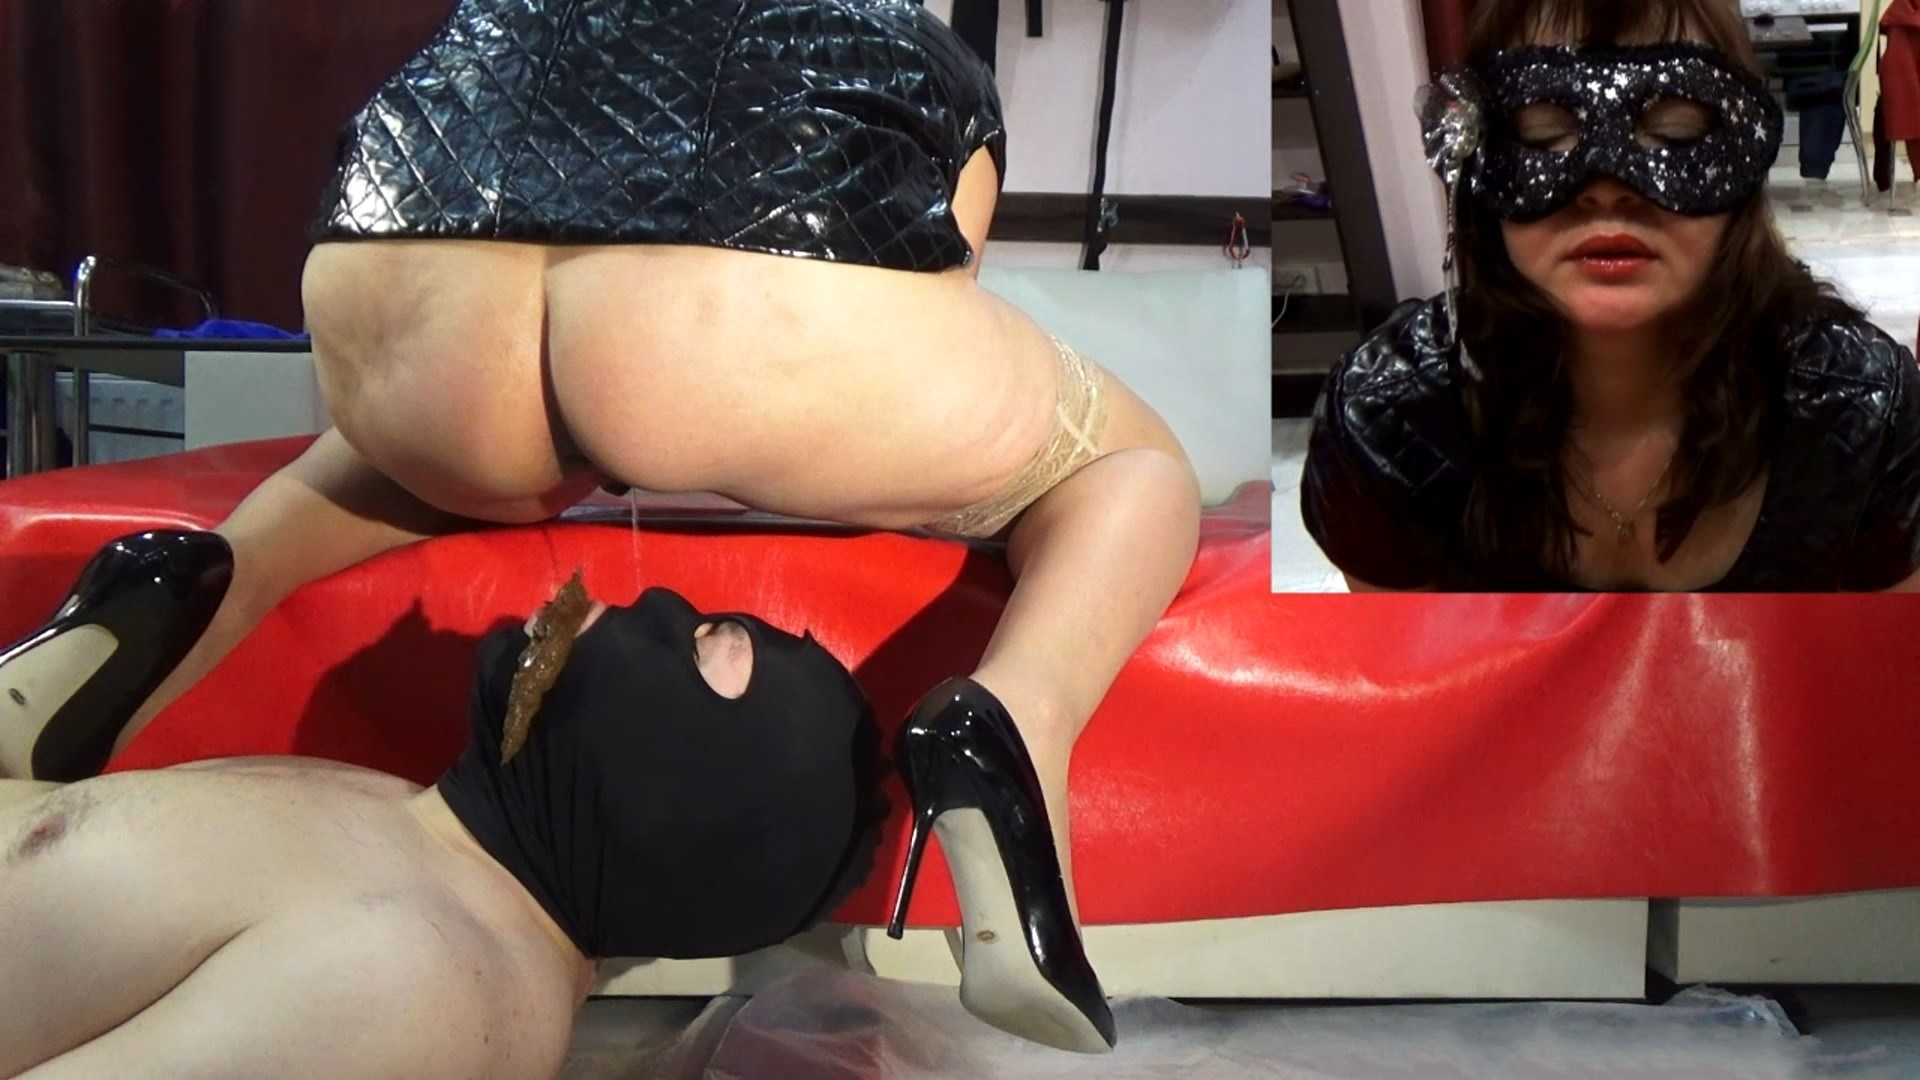 Mistress Annabelle - Shit lover | Full HD 1080p | April 24, 2017